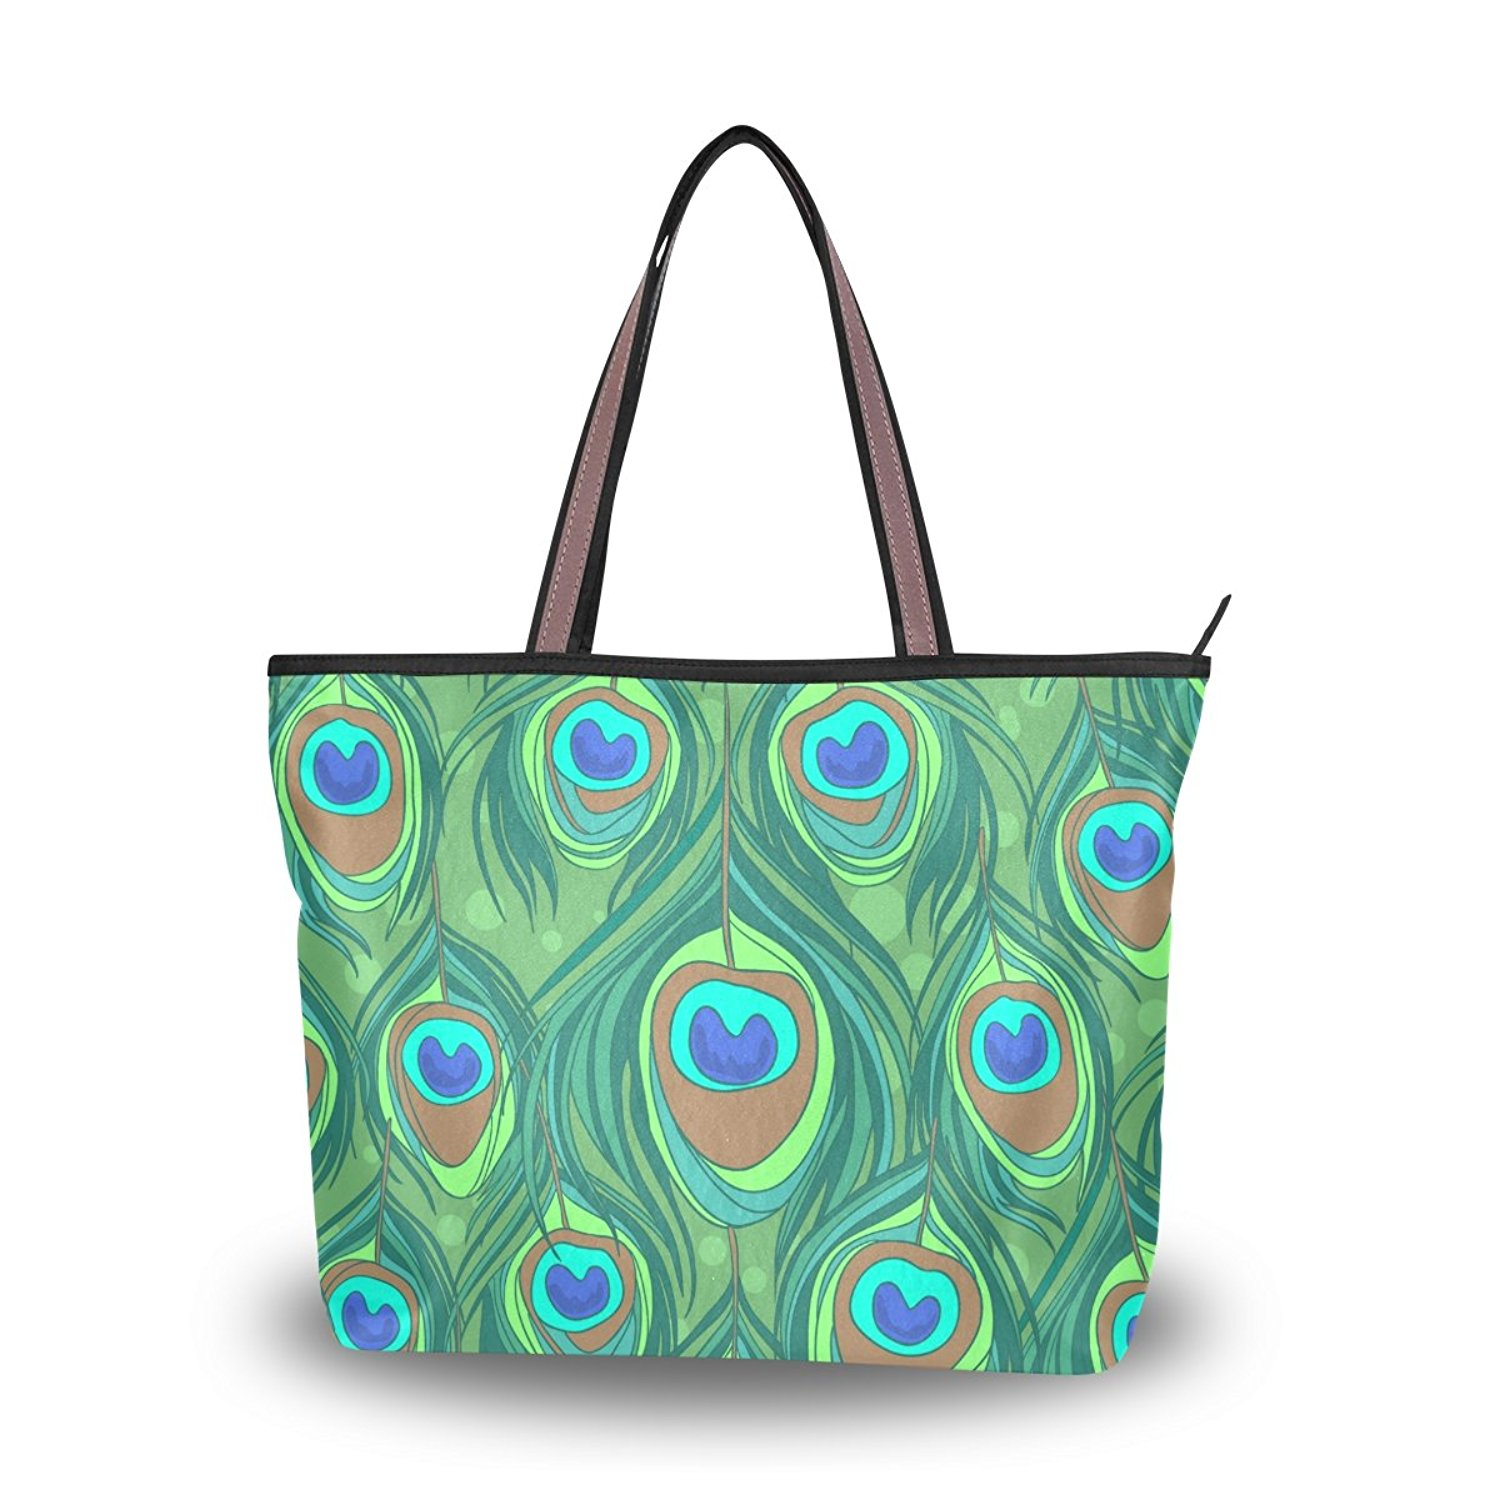 90b45f293b95 Cheap Peacock Feather Tote Bag, find Peacock Feather Tote Bag deals ...